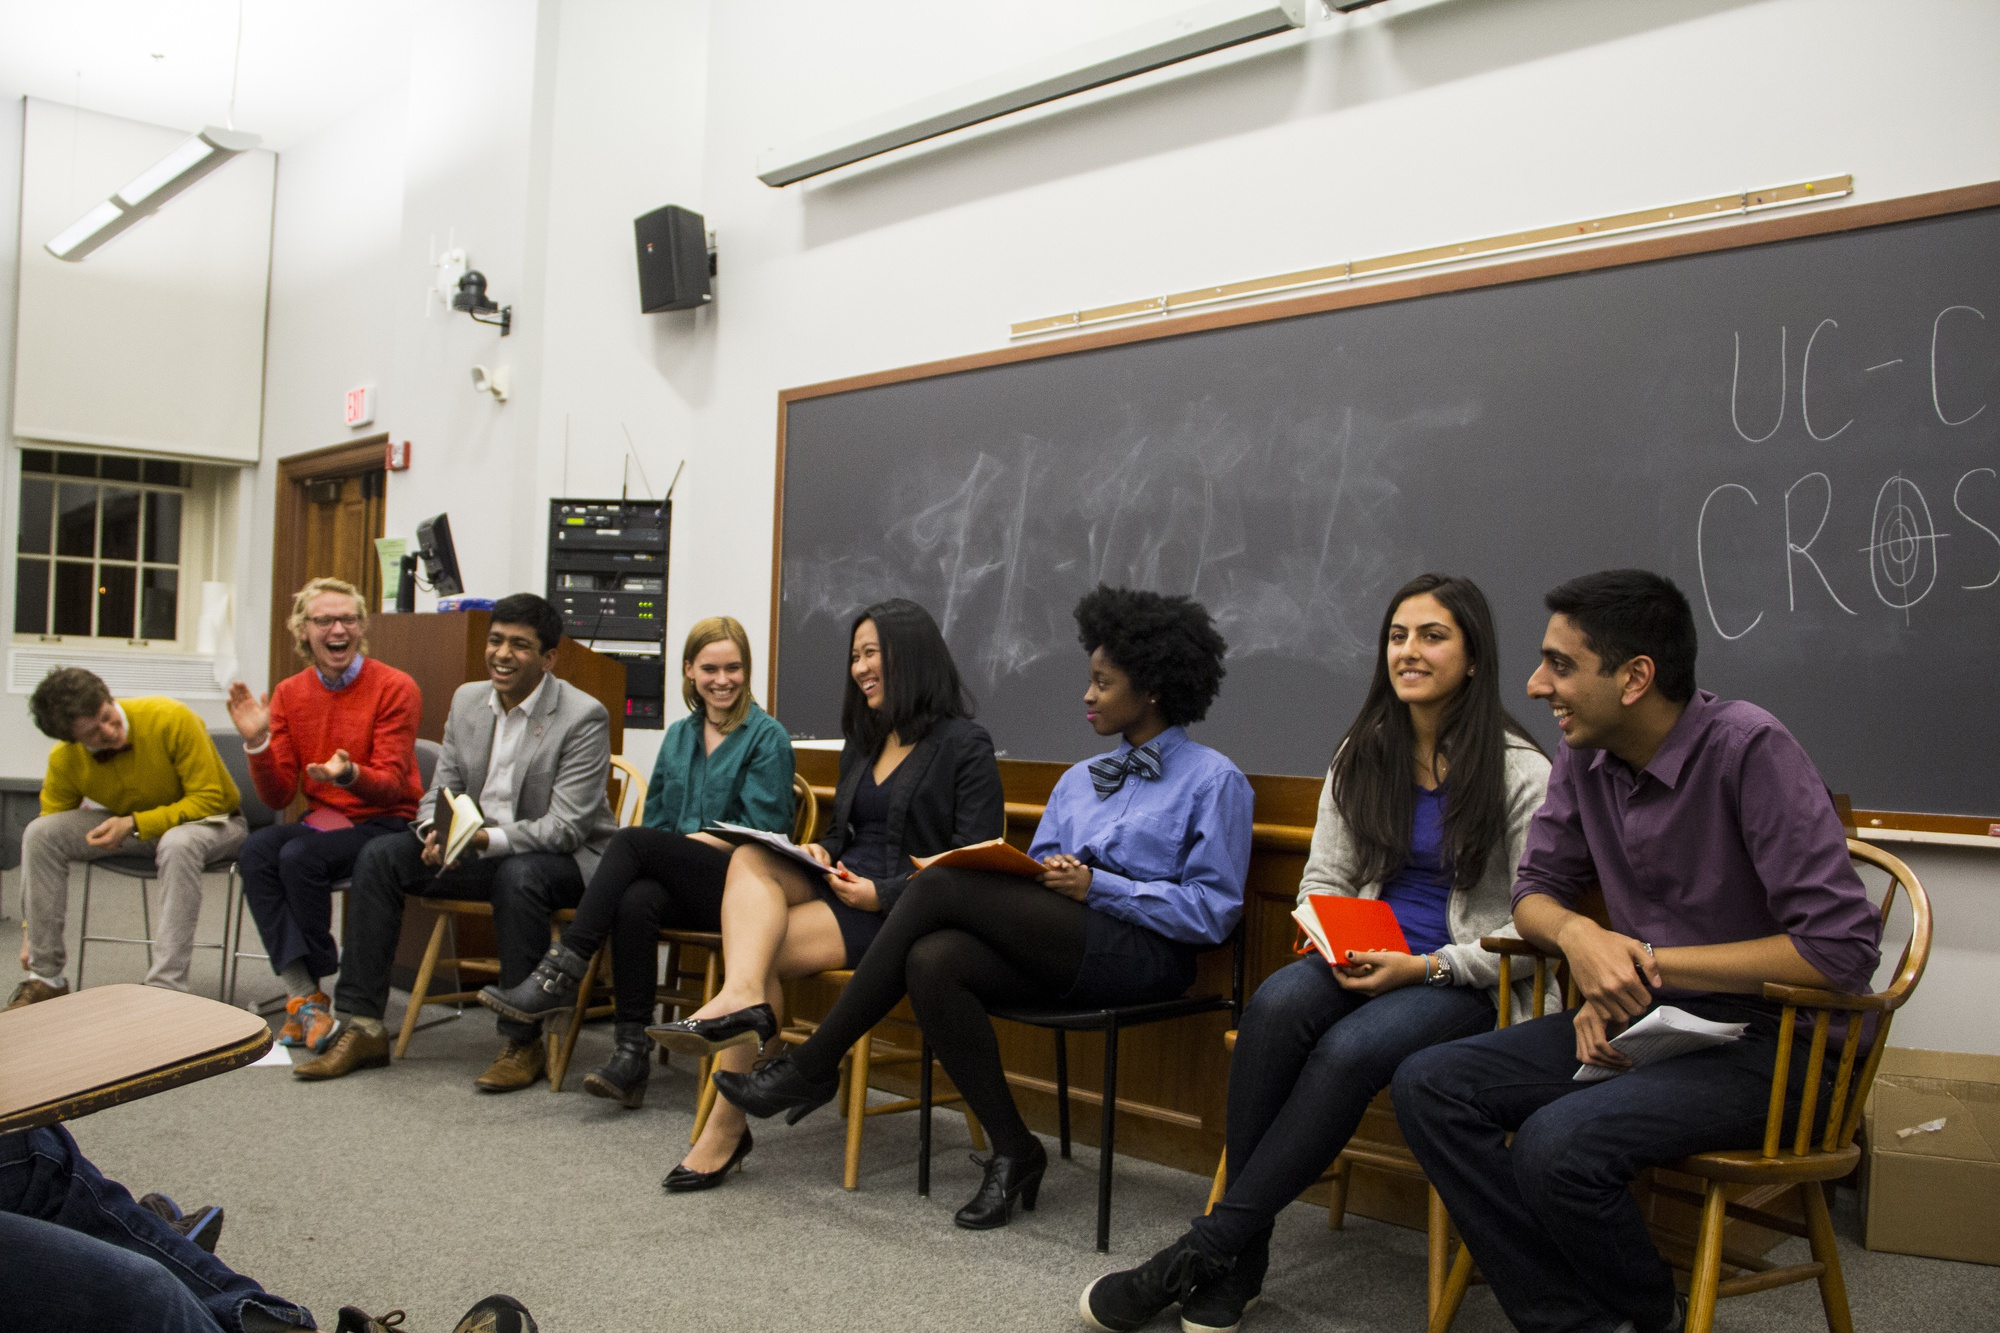 The four UC presidential tickets debated and answered questions on the platforms, past accomplishments, and plans for the Council if elected on Saturday night. The crossfire debate was co-organized by the Undergraduate Council and the Harvard Crimson.